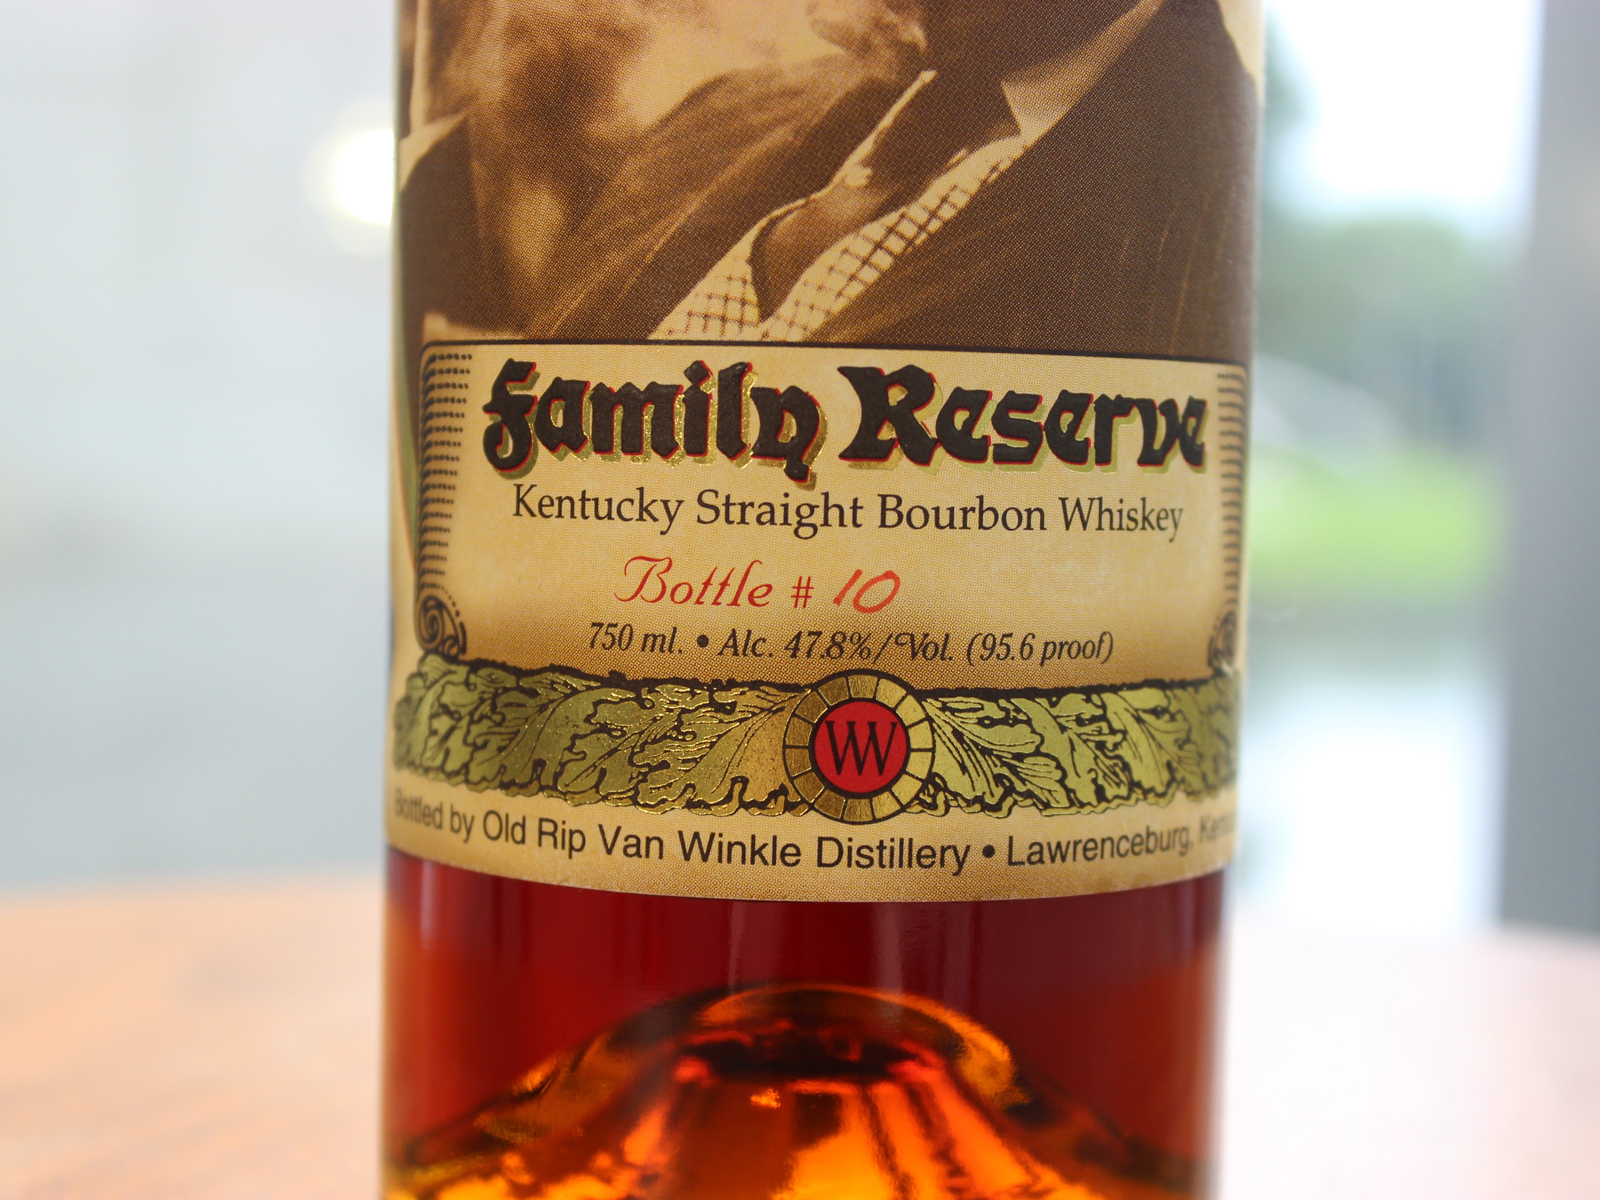 Ultra-Rare Pappy Van Winkle Family Reserve Bottle to Go Up For Auction